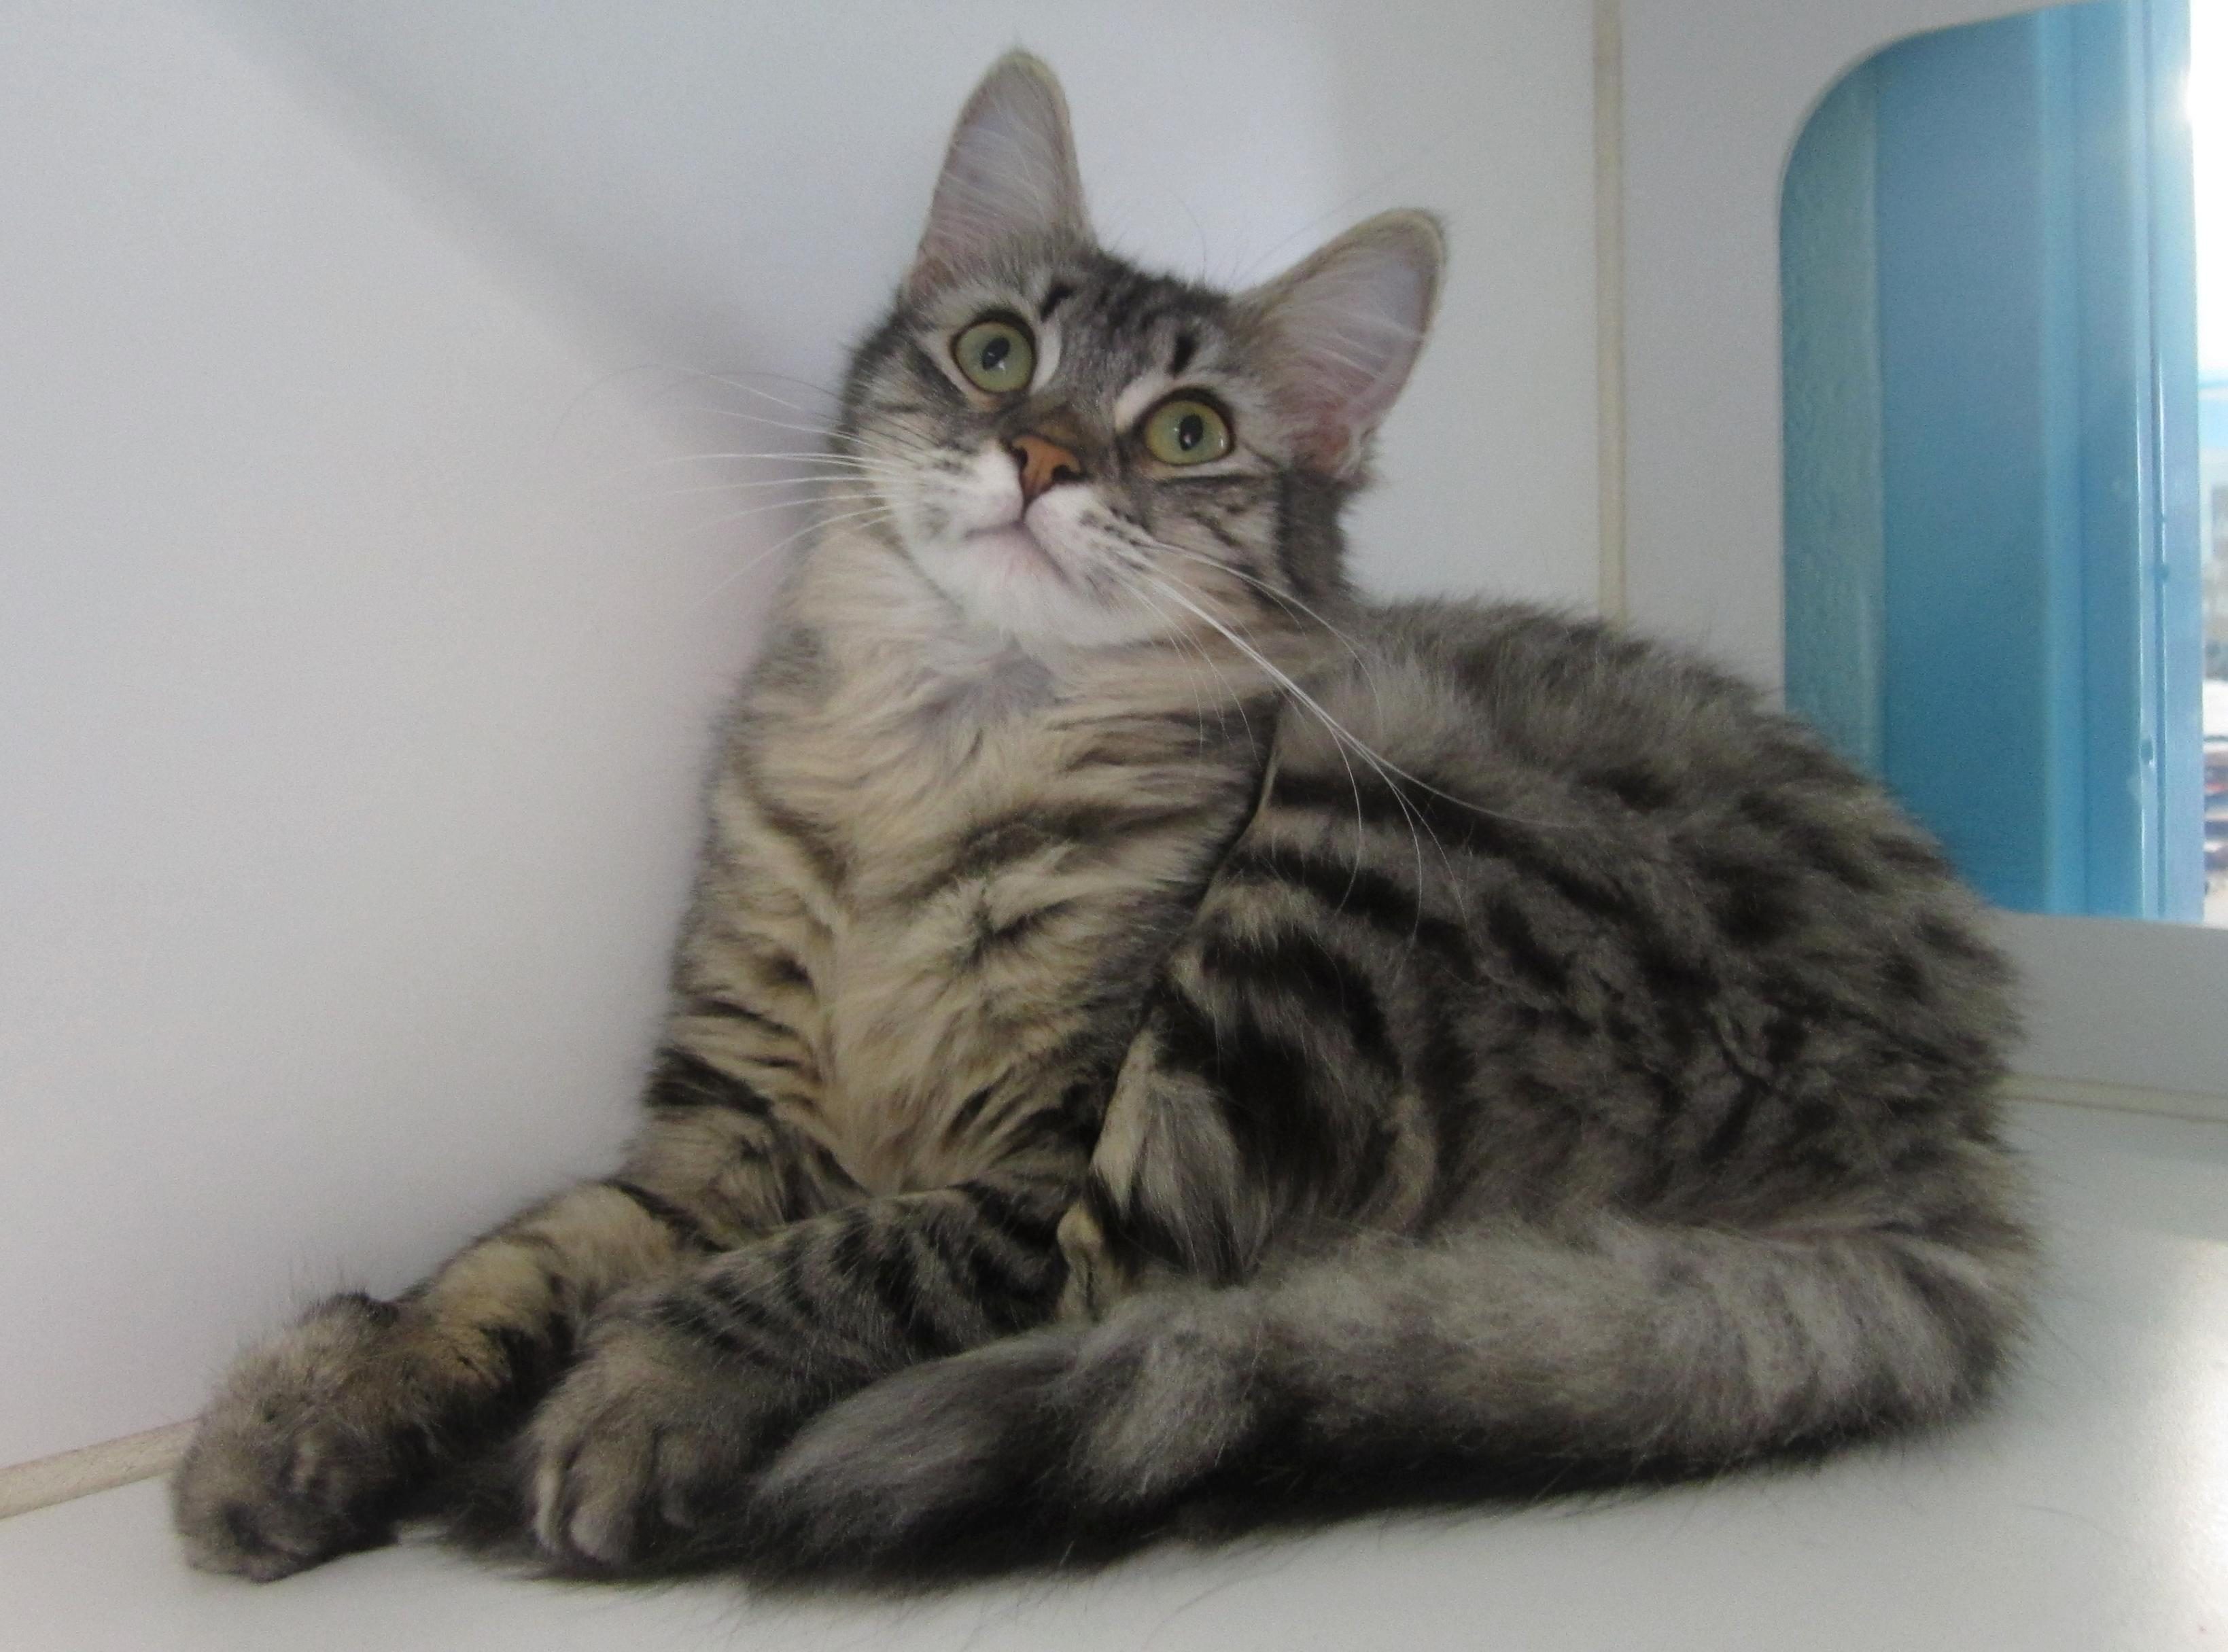 meet tori  exotic beauty a petfinder adoptable domestic